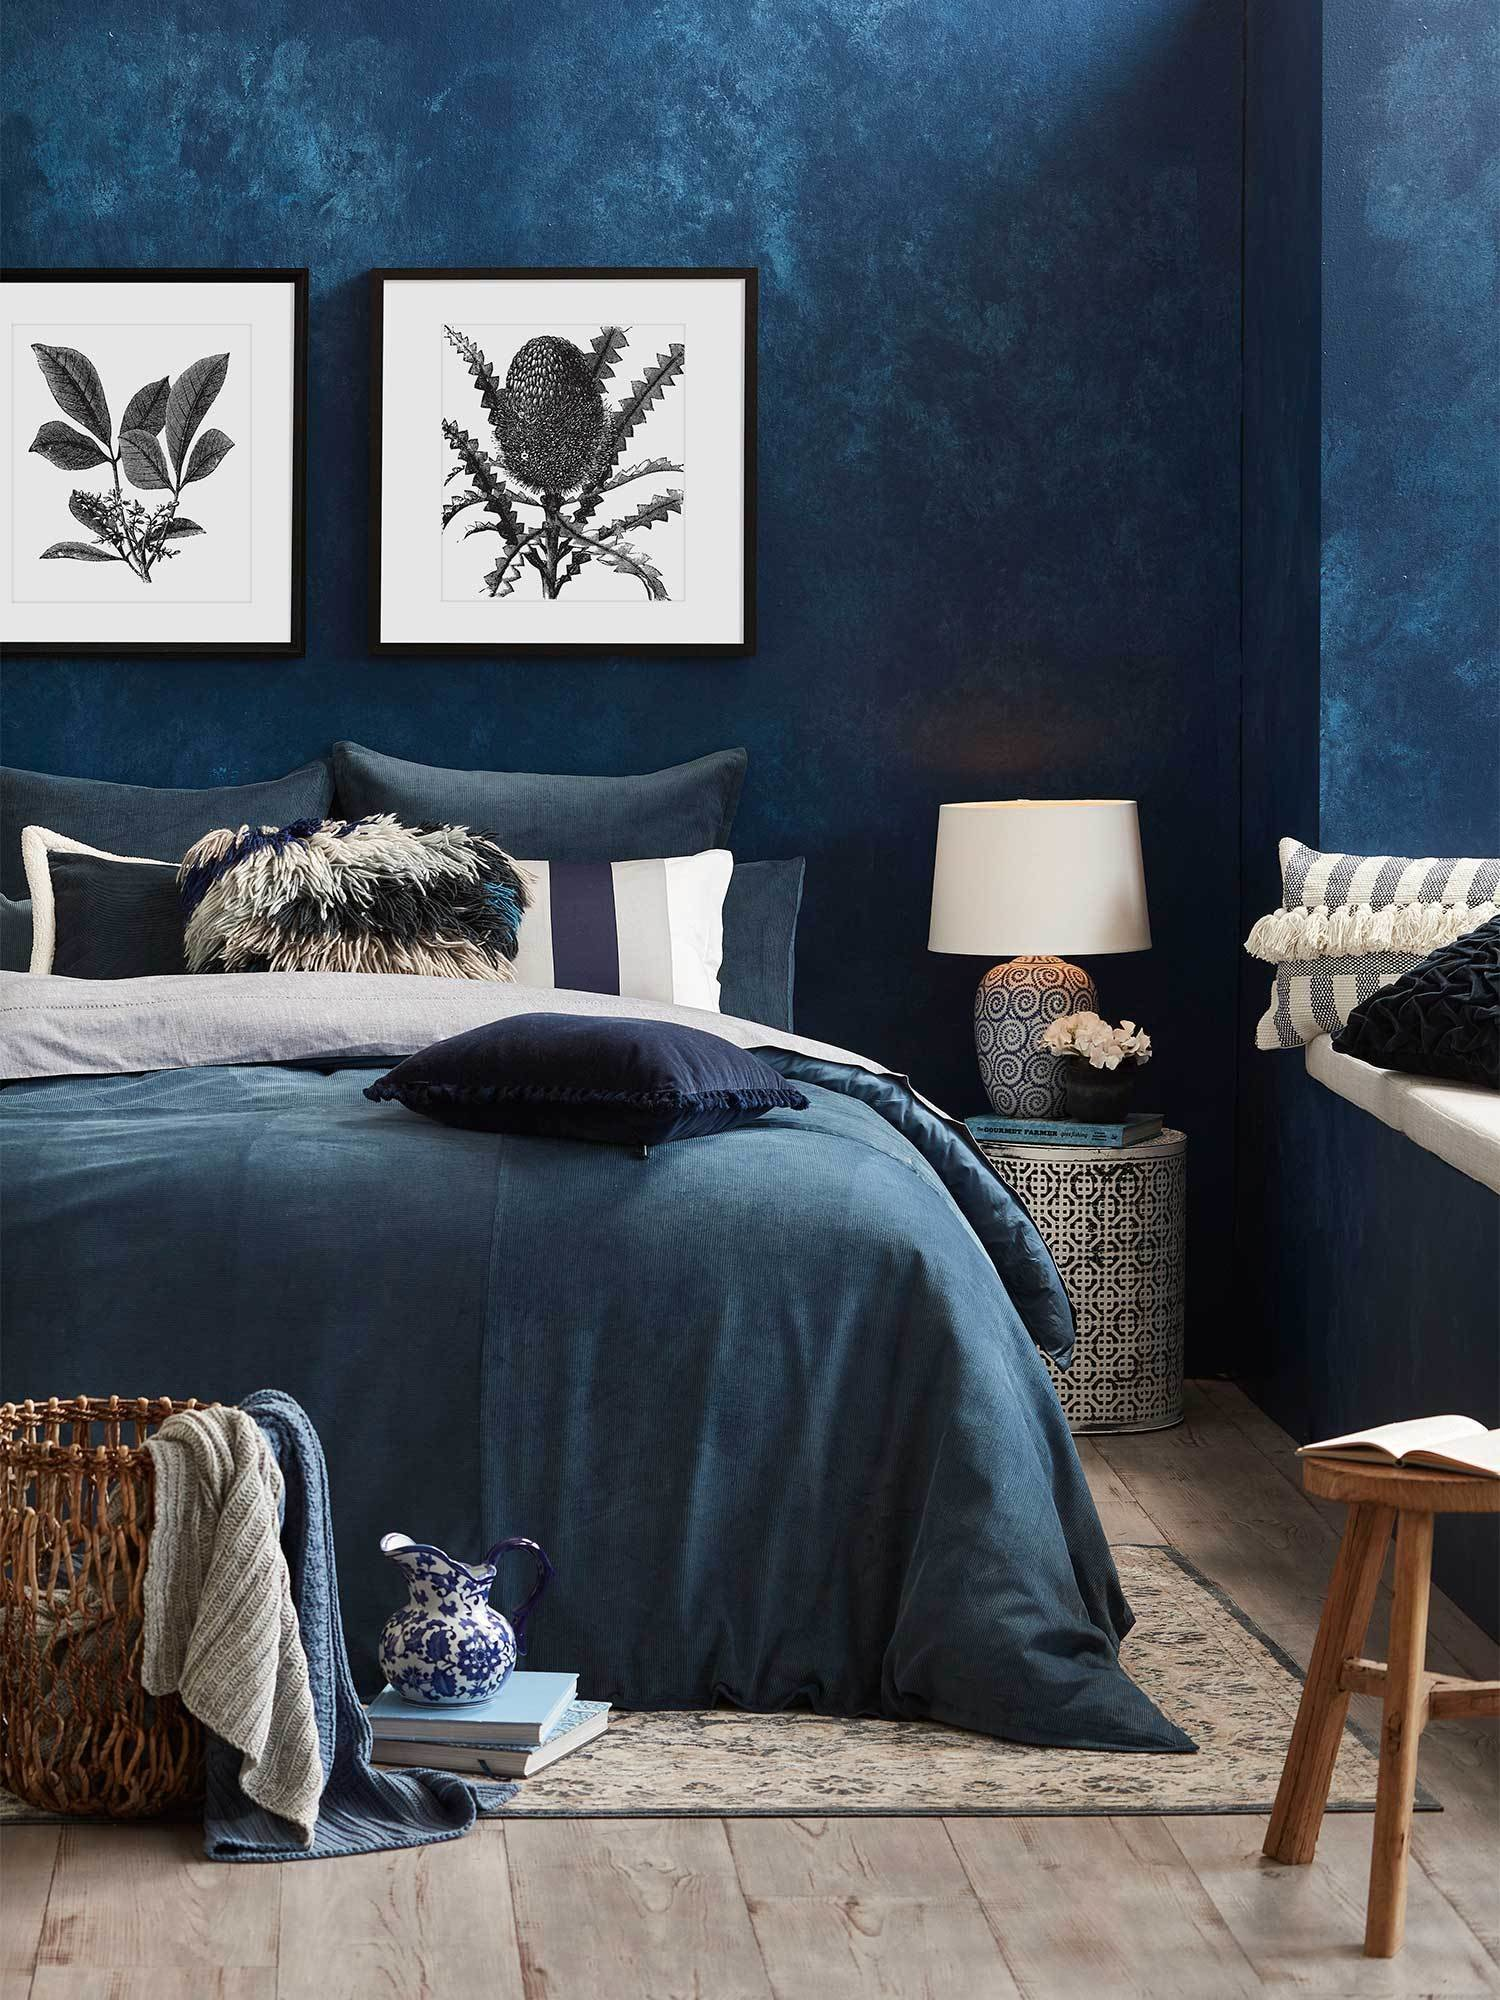 Best Bedroom Ideas With Feature Wall – Realestate Com Au With Pictures